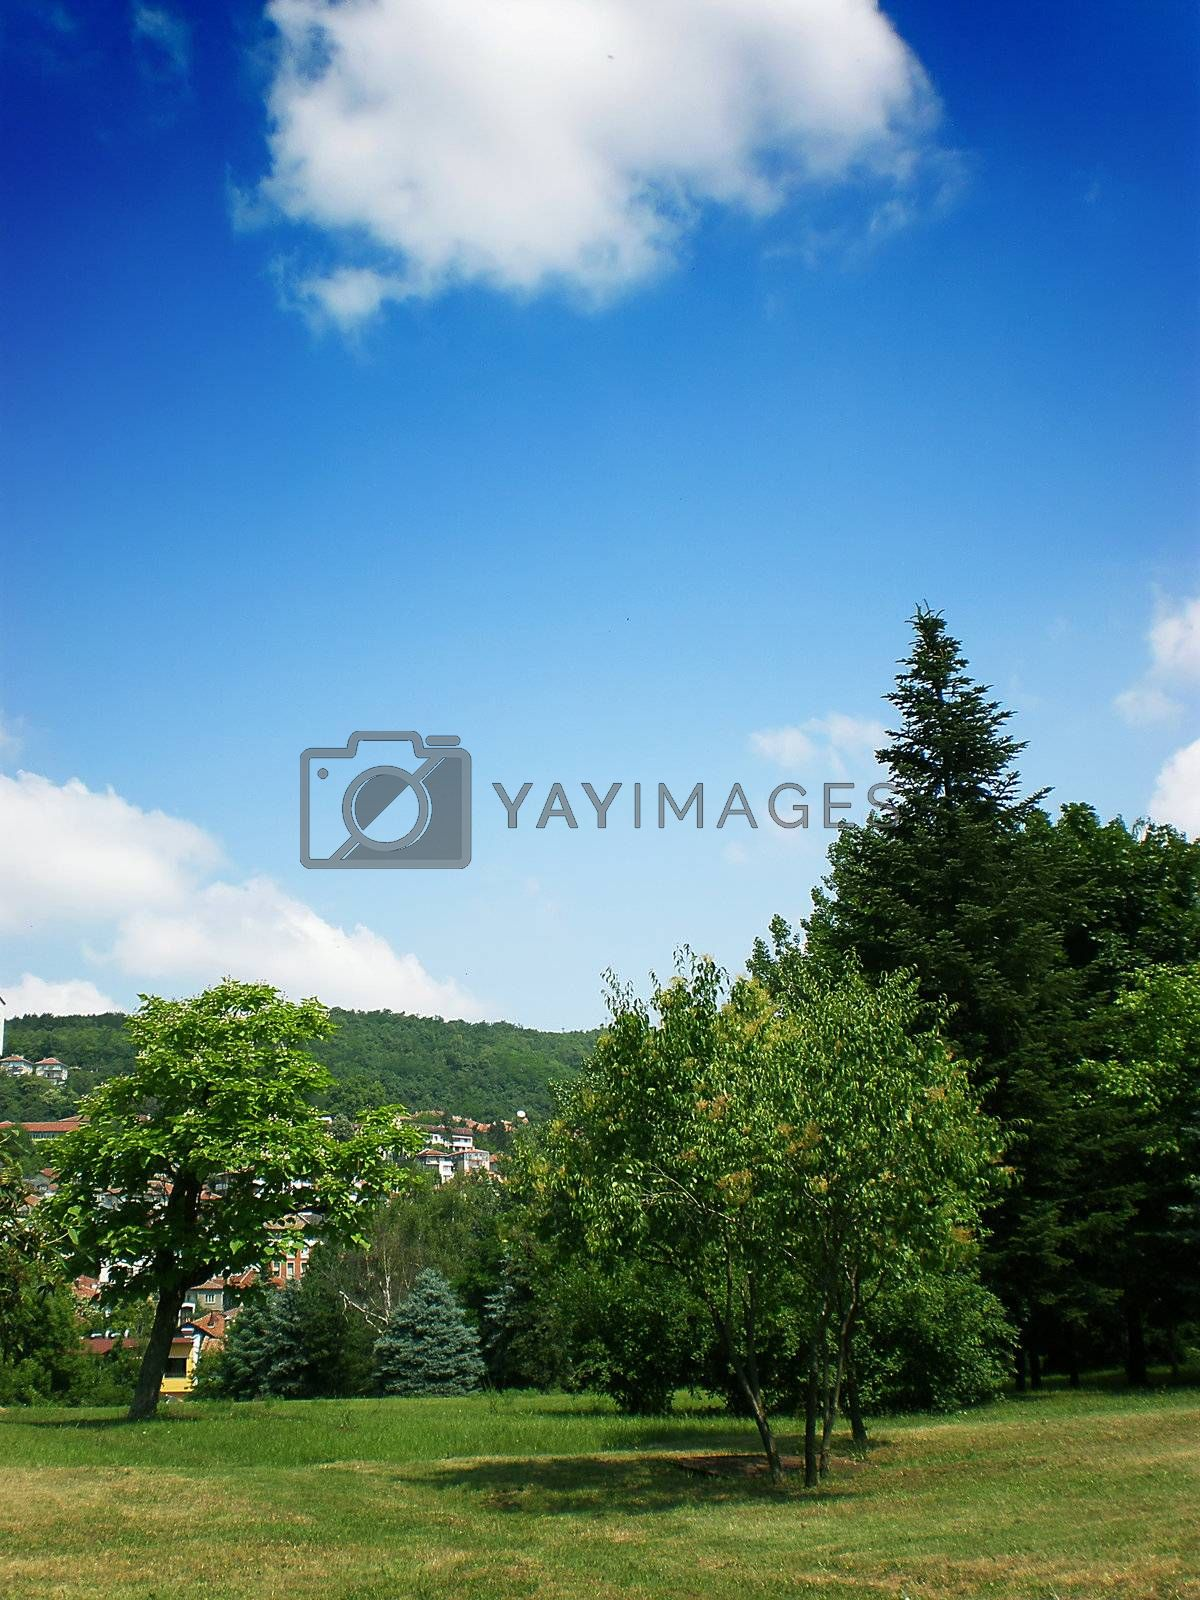 Royalty free image of landscape by Dessie_bg